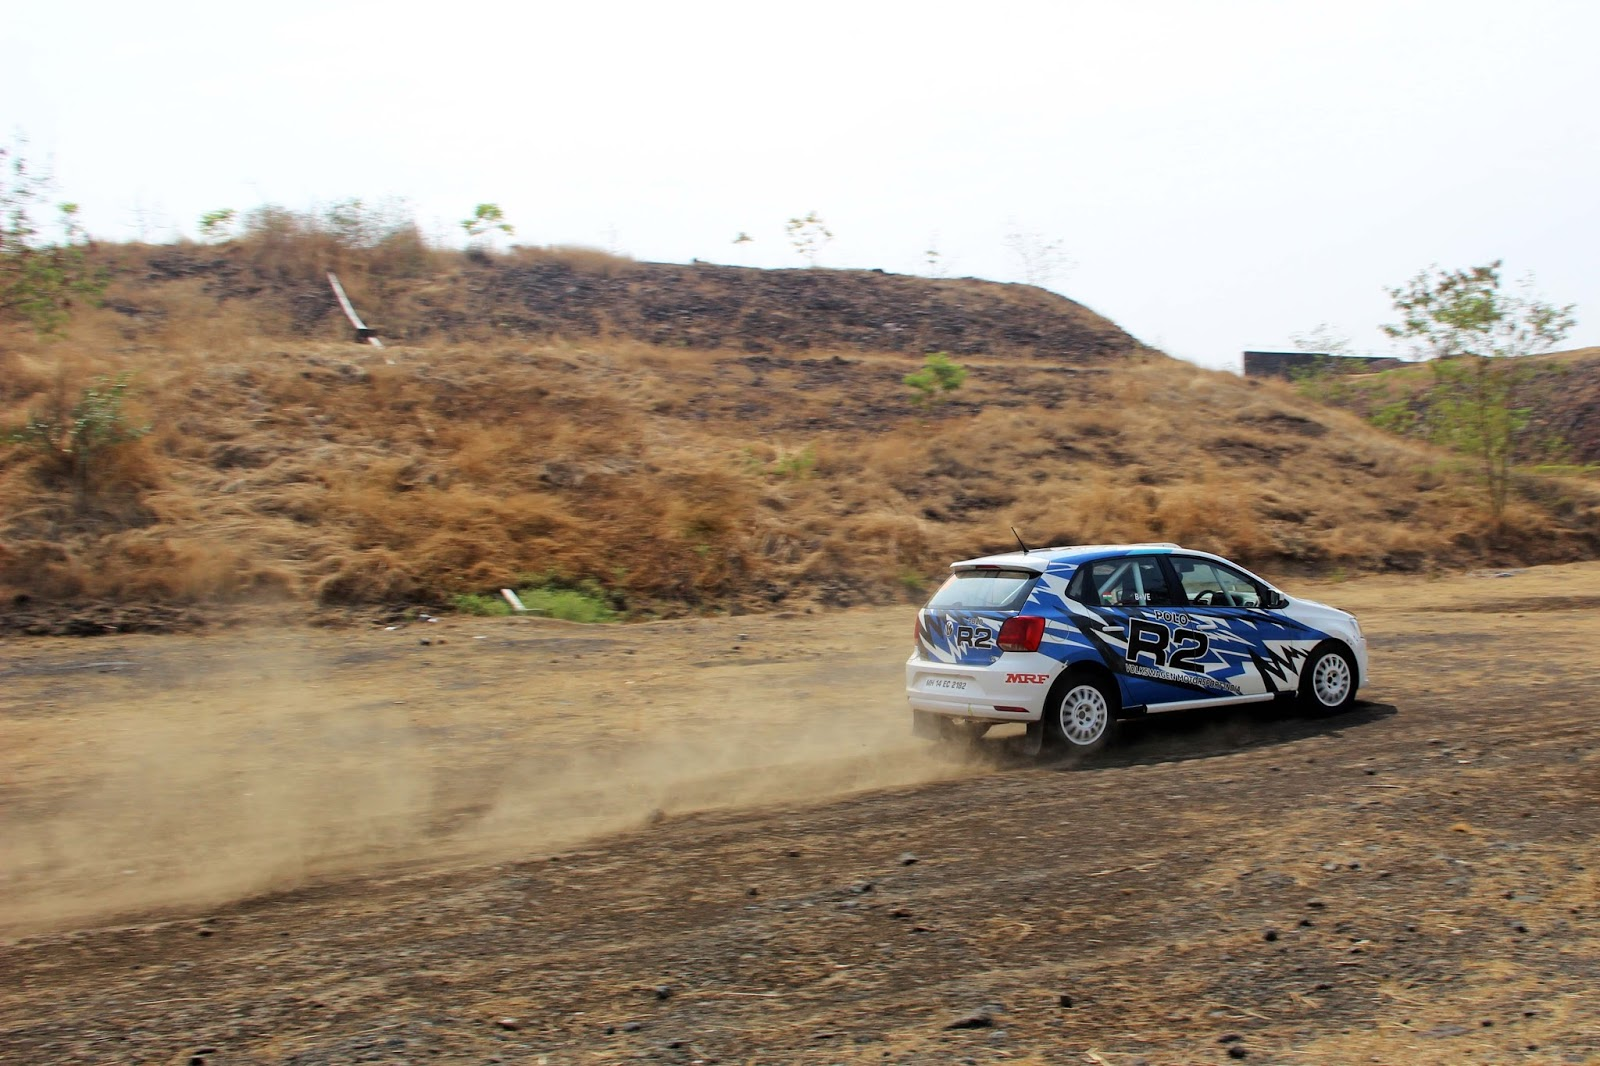 Vicky Chandhok Makes A Comeback To Rallying With The Volkswagen Polo